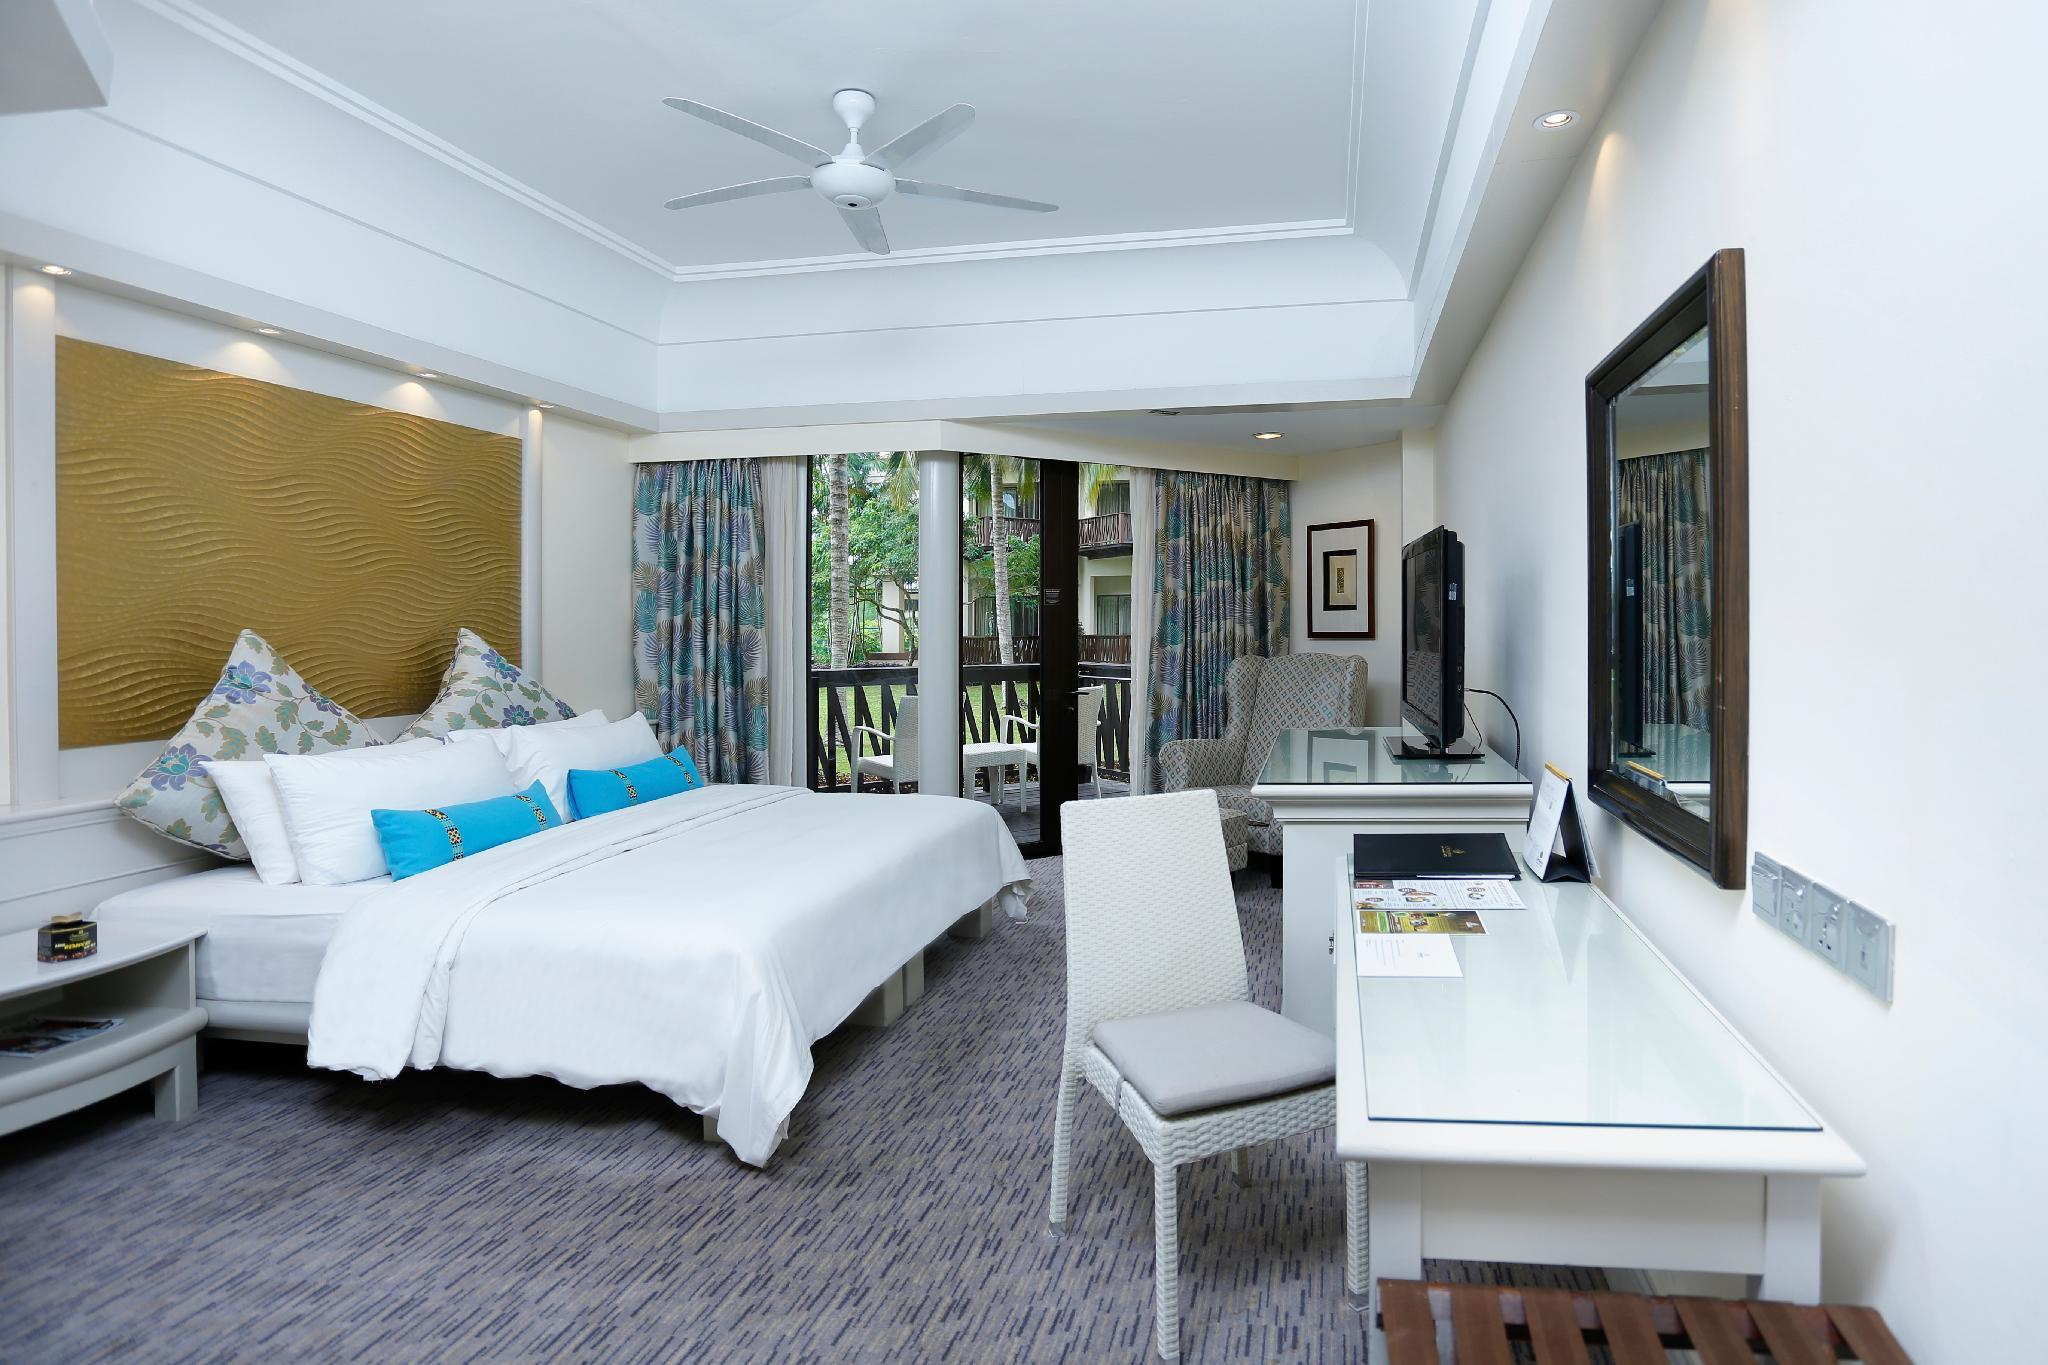 Deluxe Garden View Room - Malaysia, Singapore and Brunei Residents Only